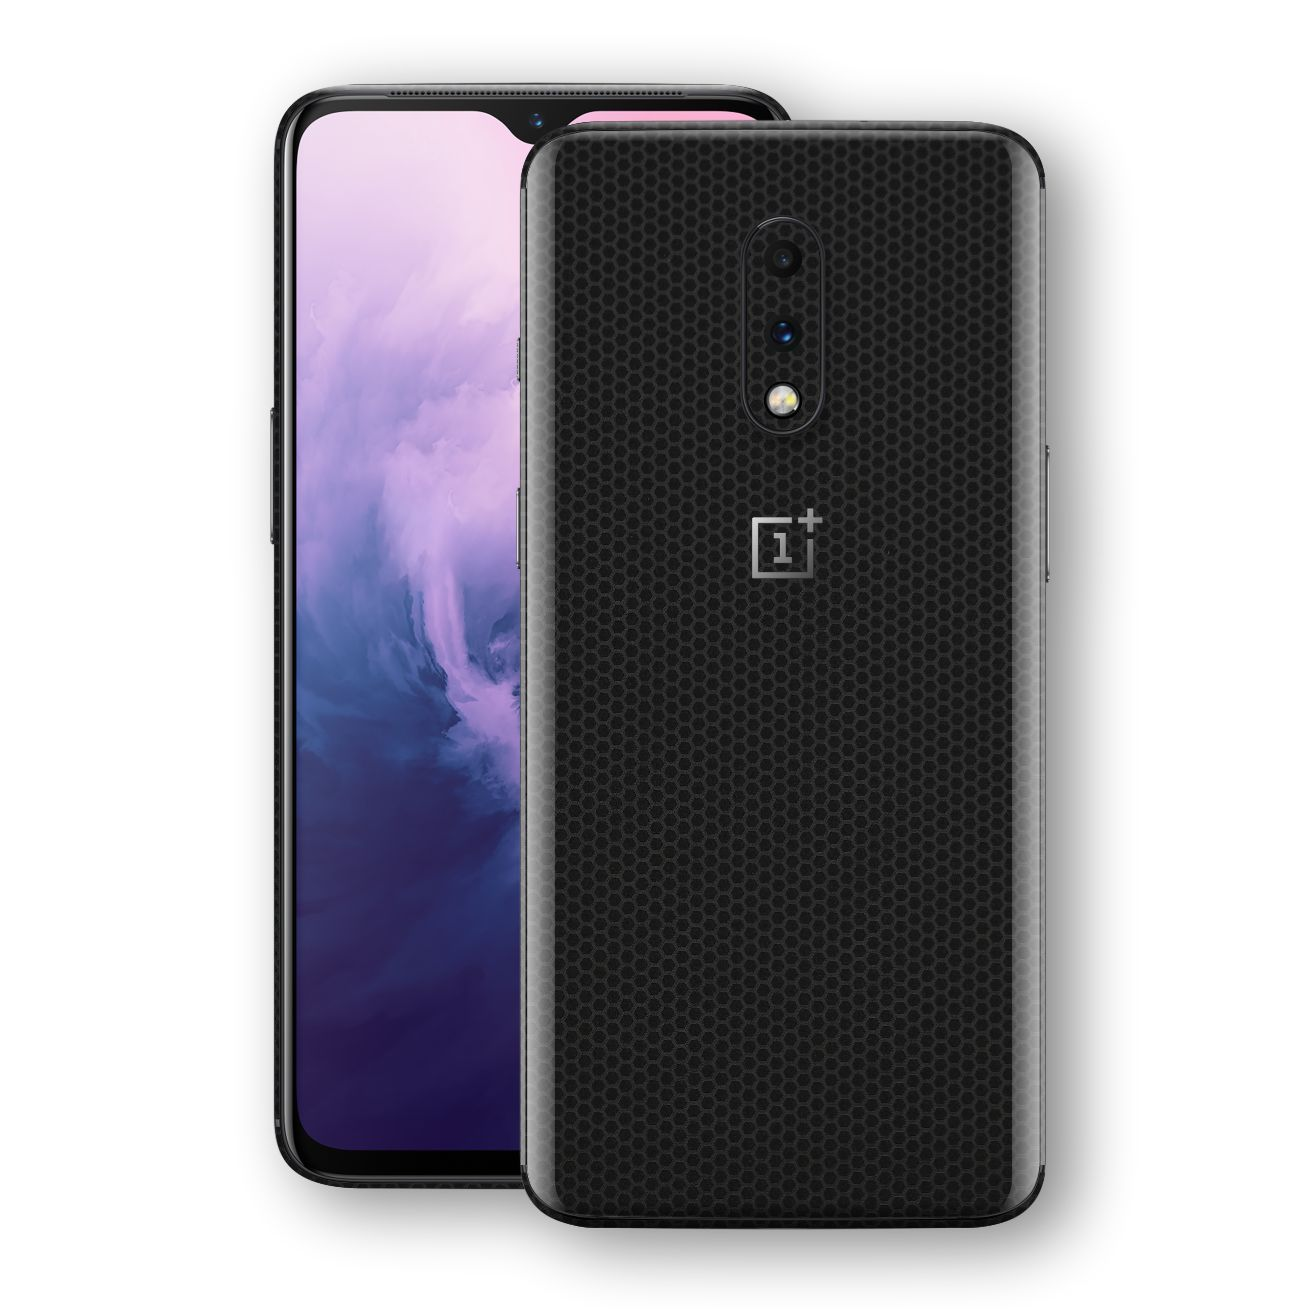 OnePlus 7 Black Matrix Textured Skin Wrap Decal 3M by EasySkinz